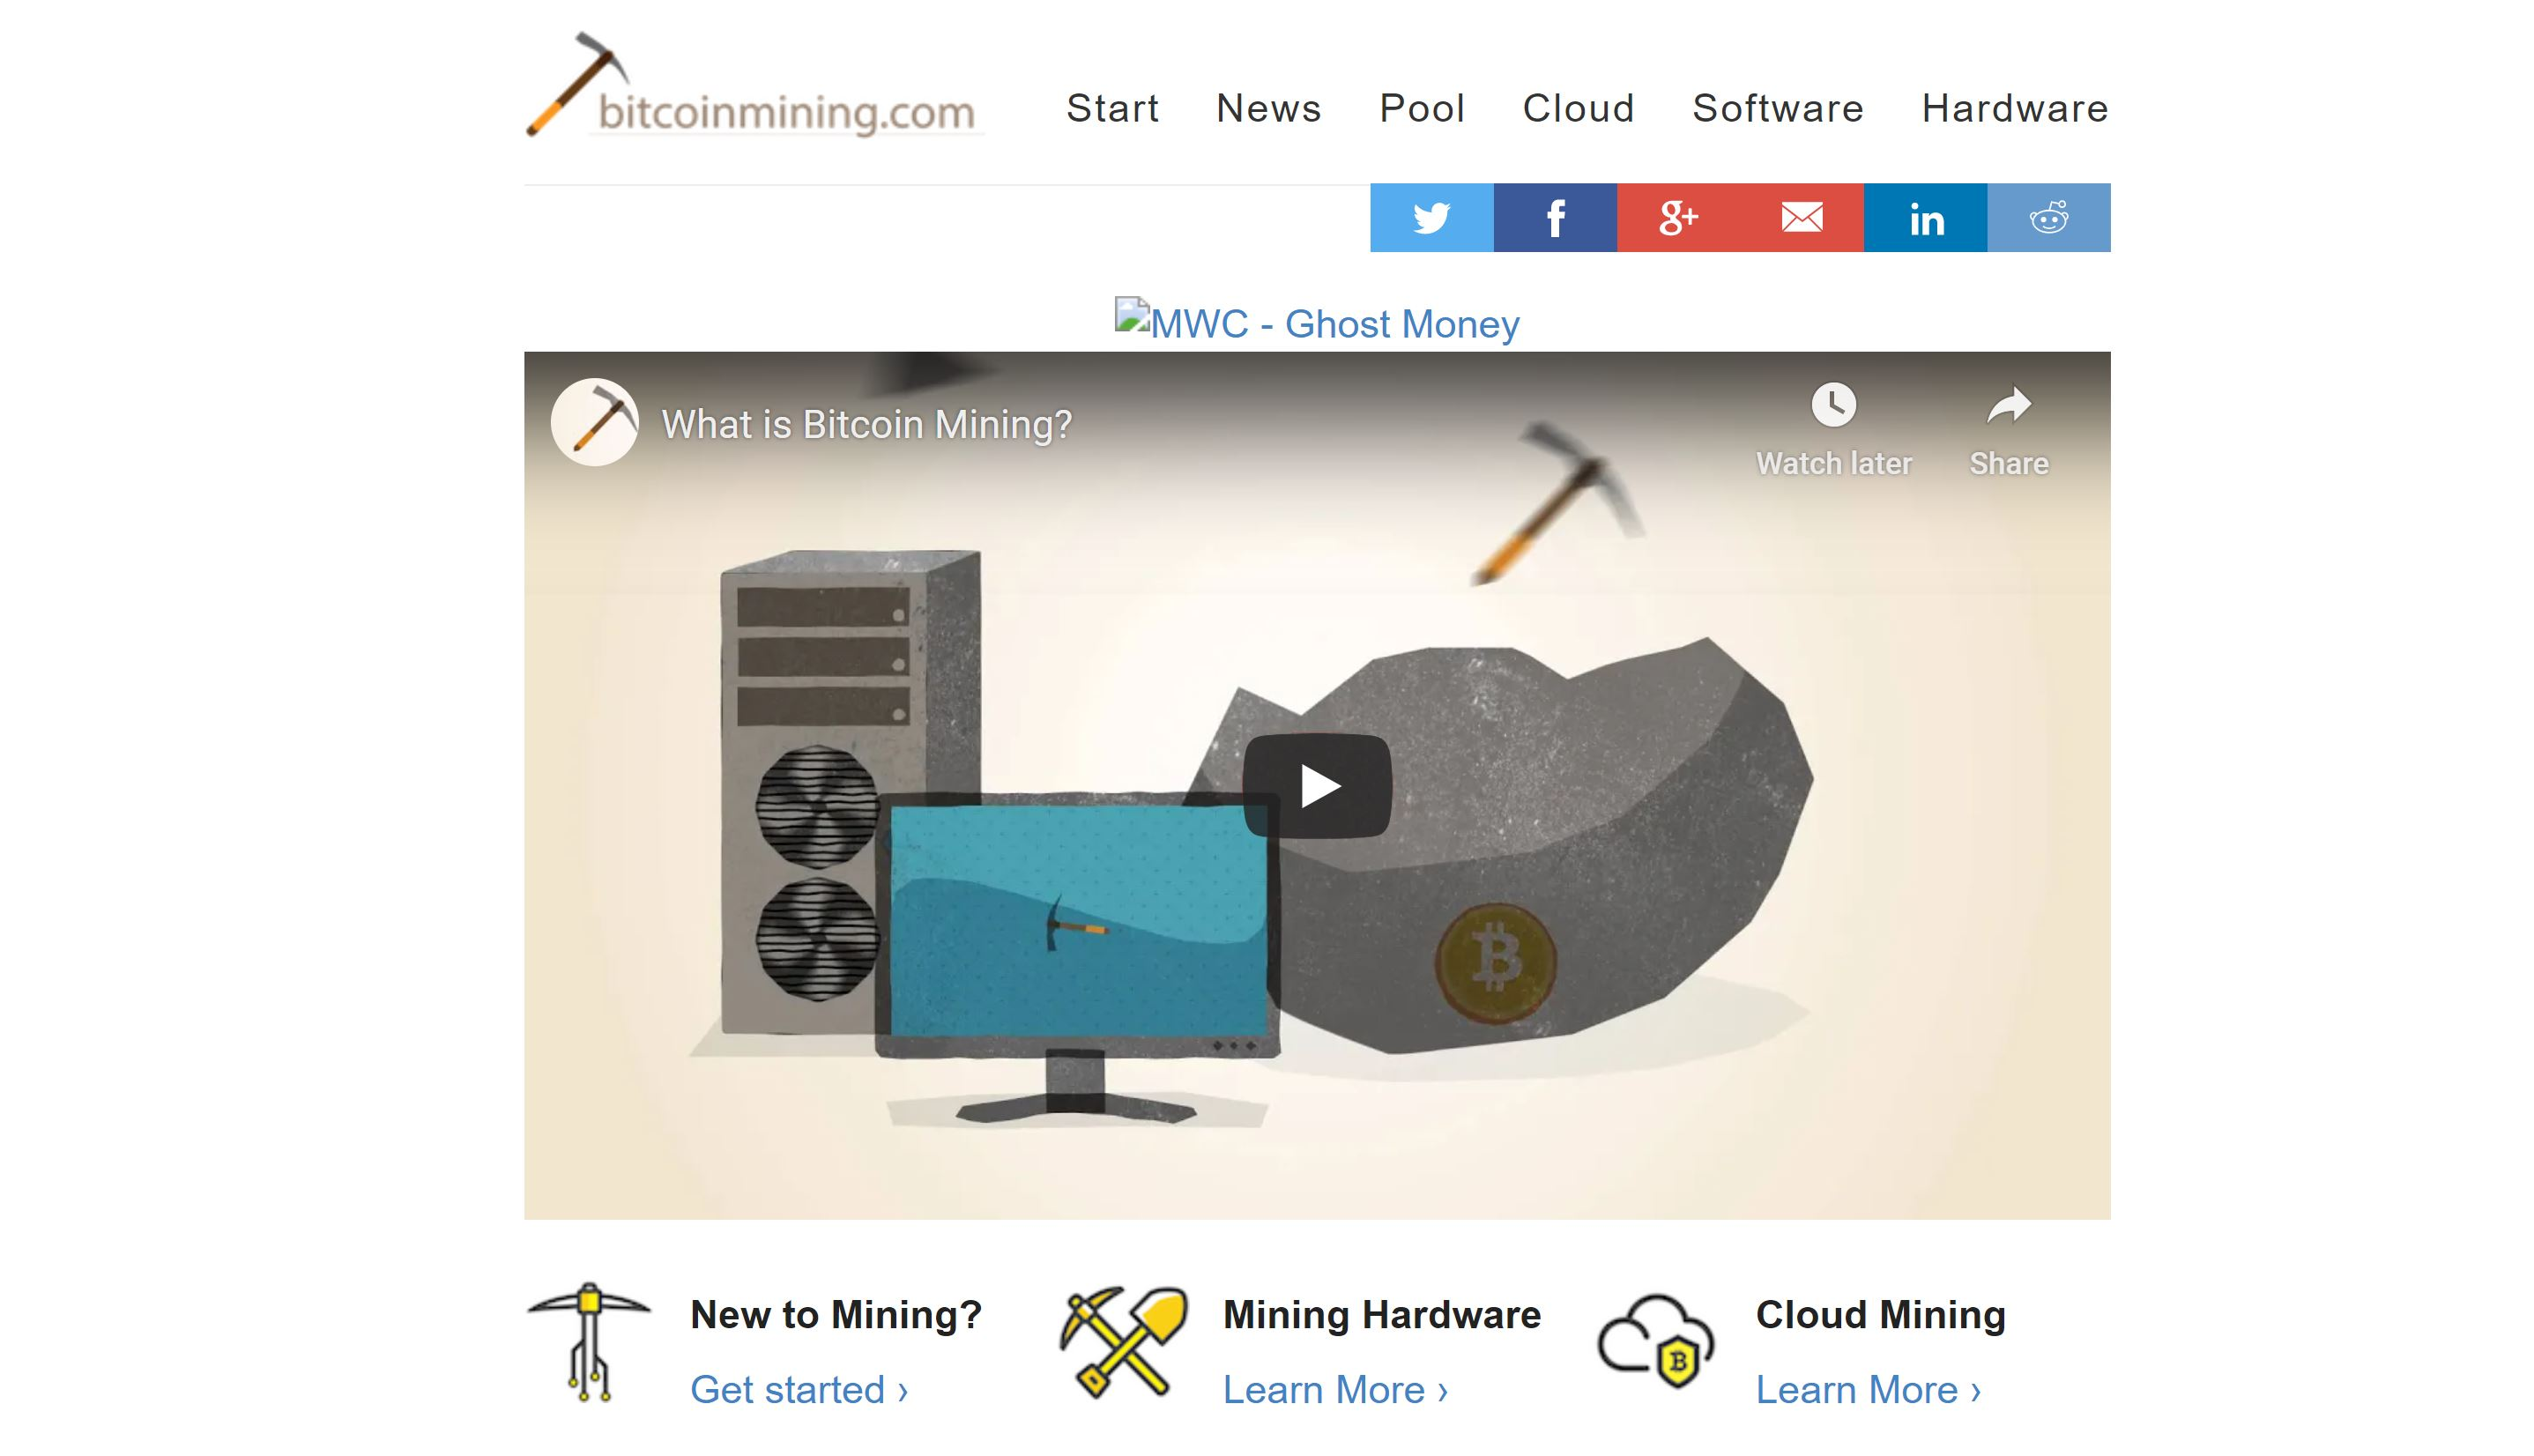 Bitcoin Mining Website and Guide